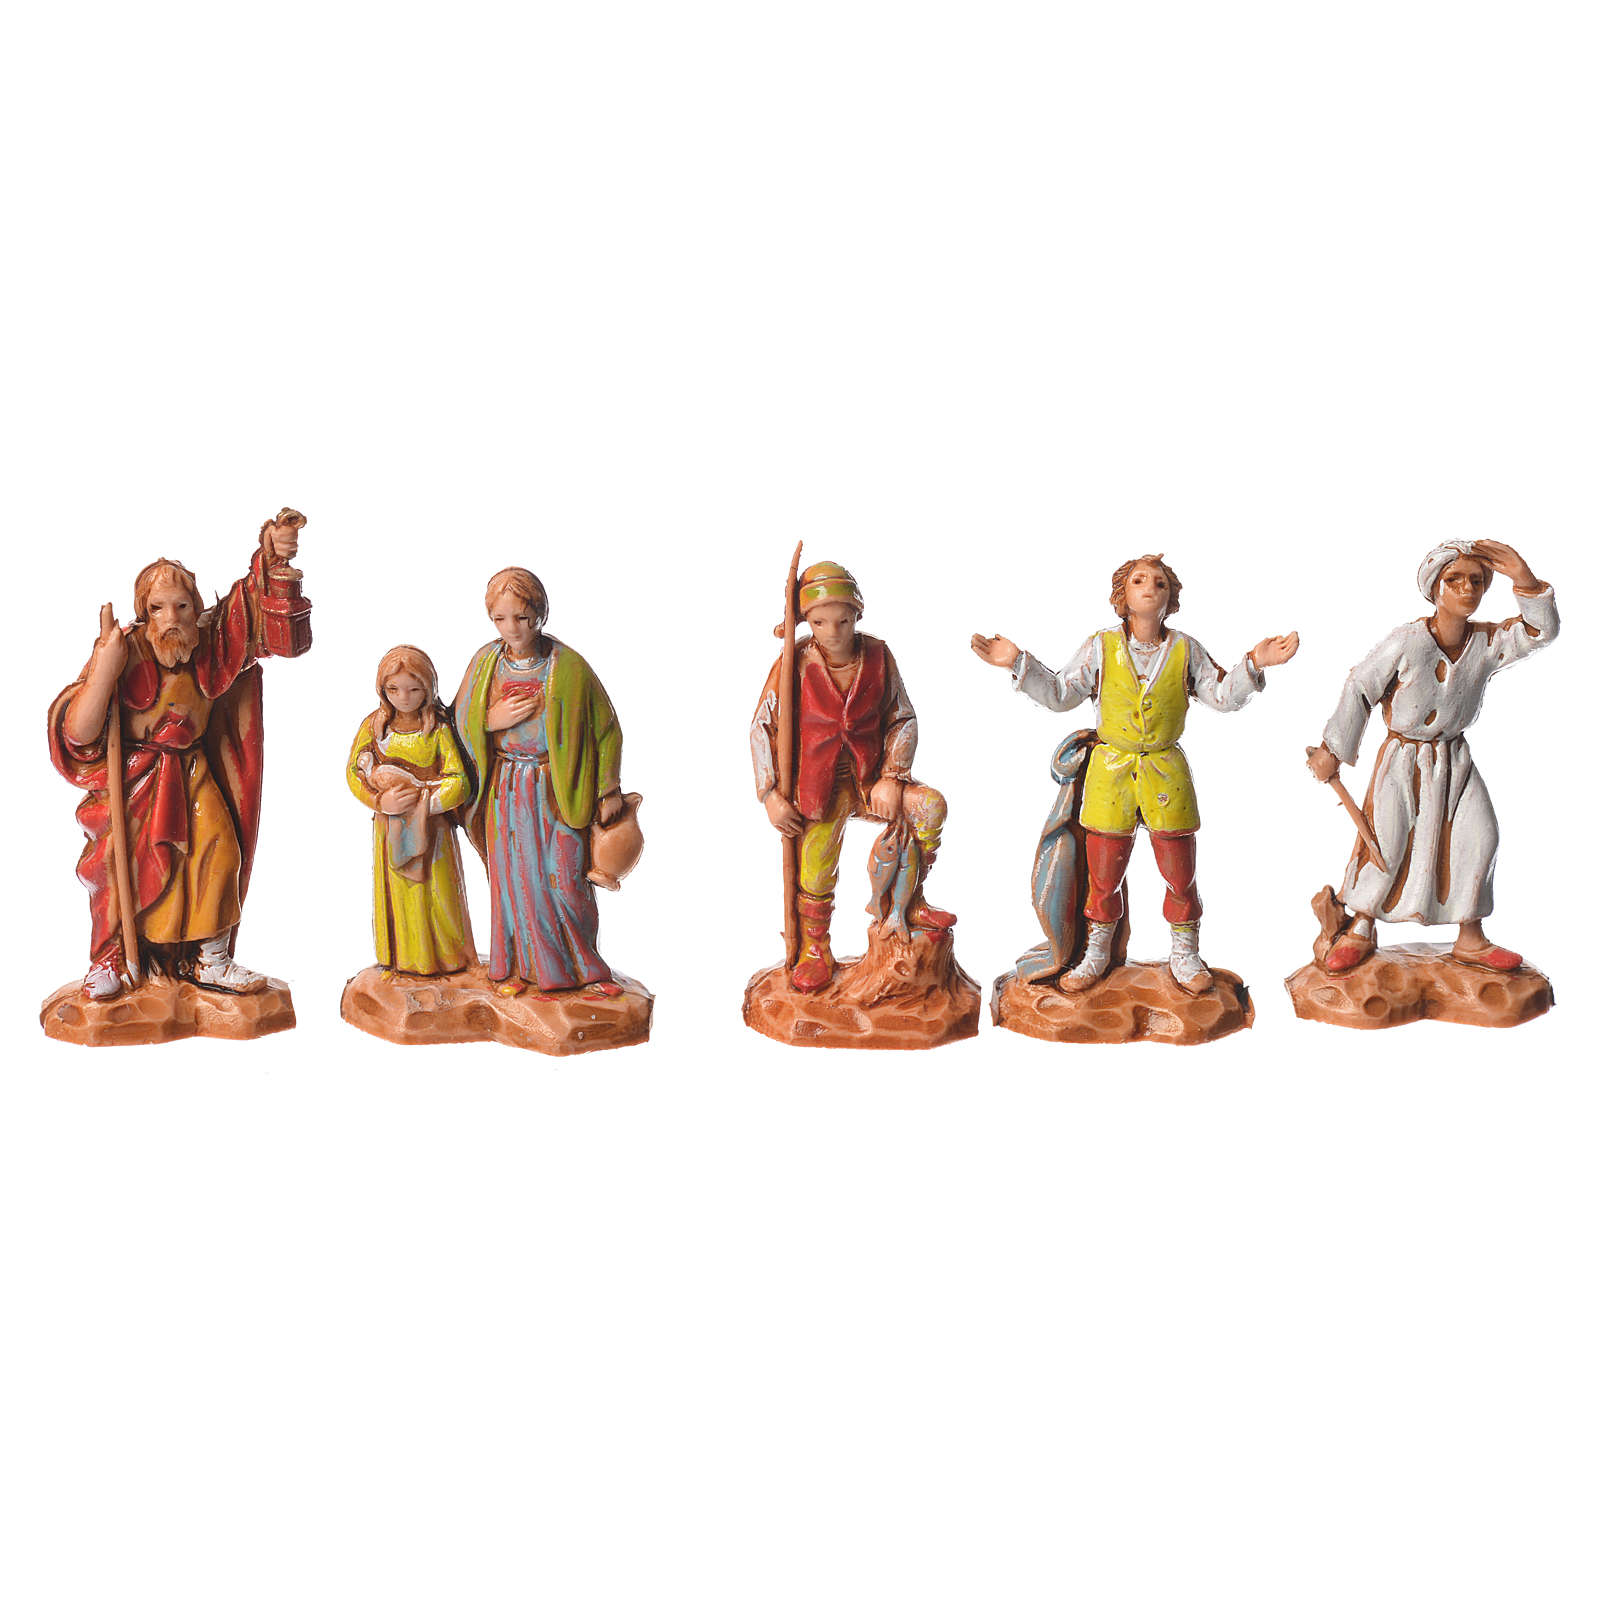 Nativity Scene shepherds and camel by Moranduzzo 3.5cm, 22 pieces 4